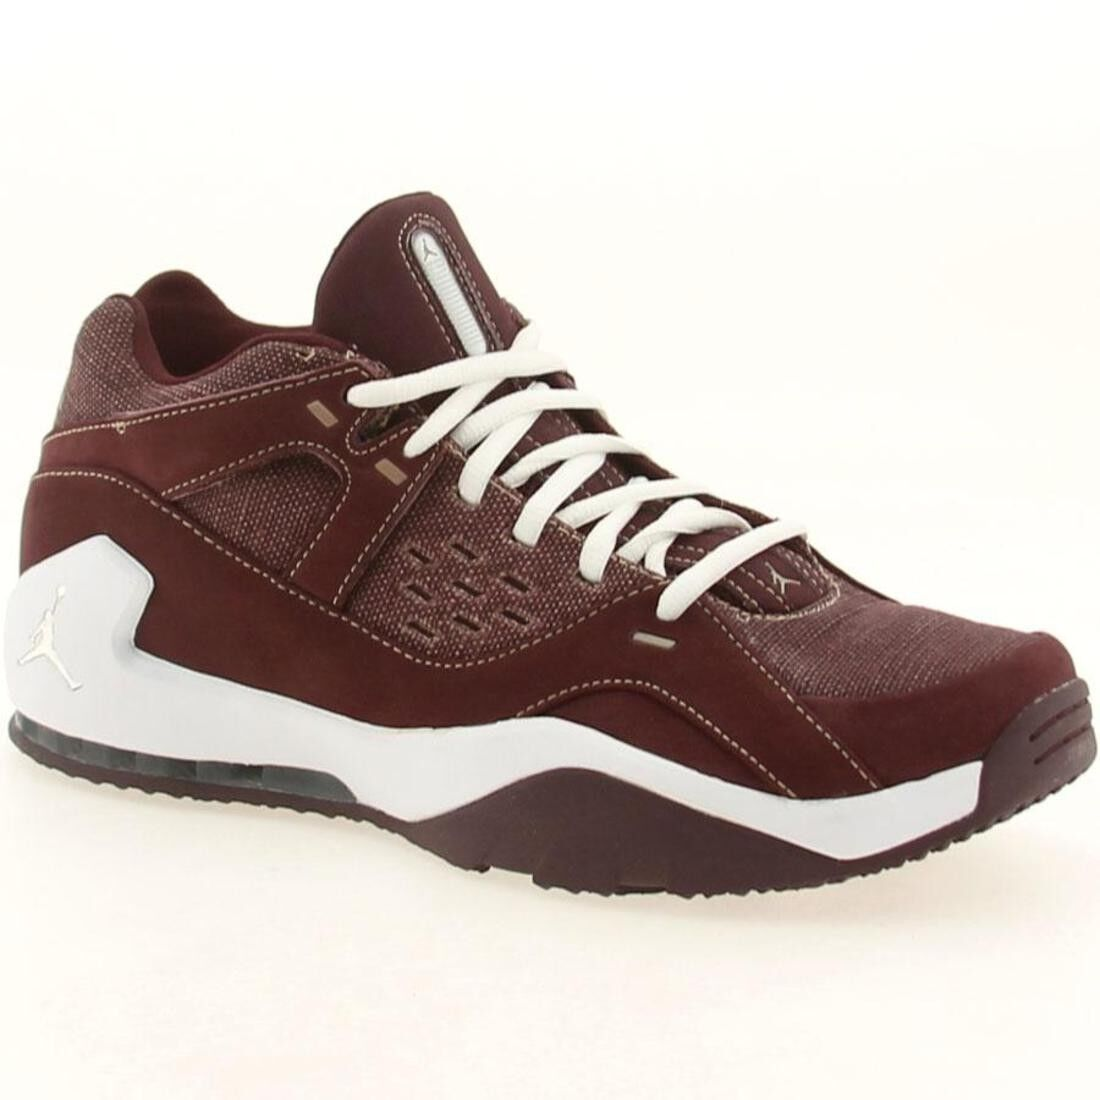 130 Nike air Jordan S.U. Trainer 314317-602 burgundy V 5 shoes